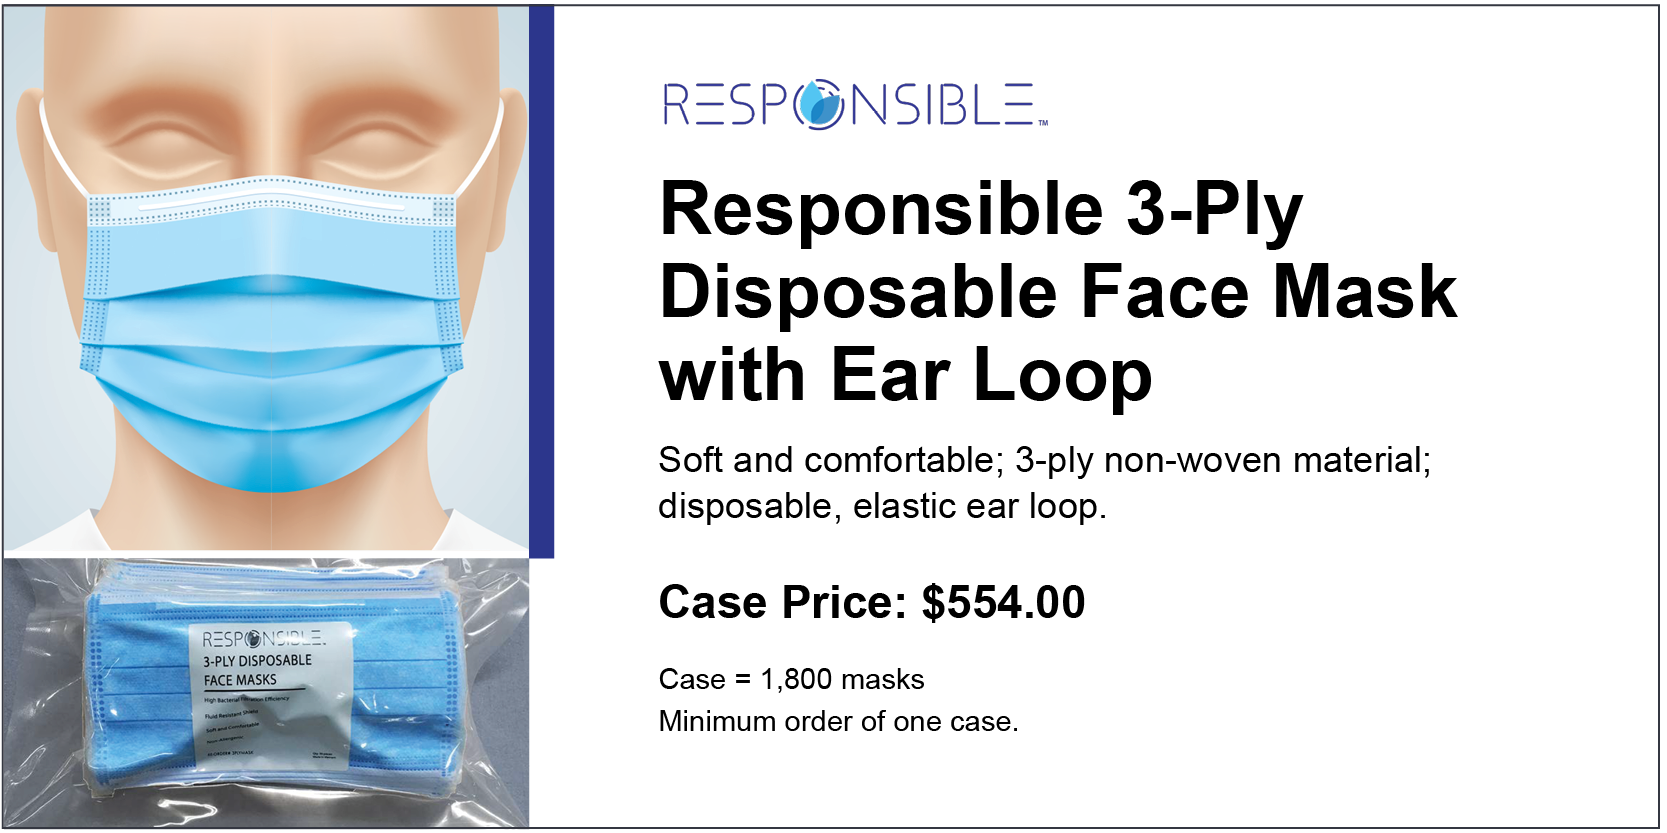 Responsible 3-Ply Disposable Face Mask wtih Ear Loop-4